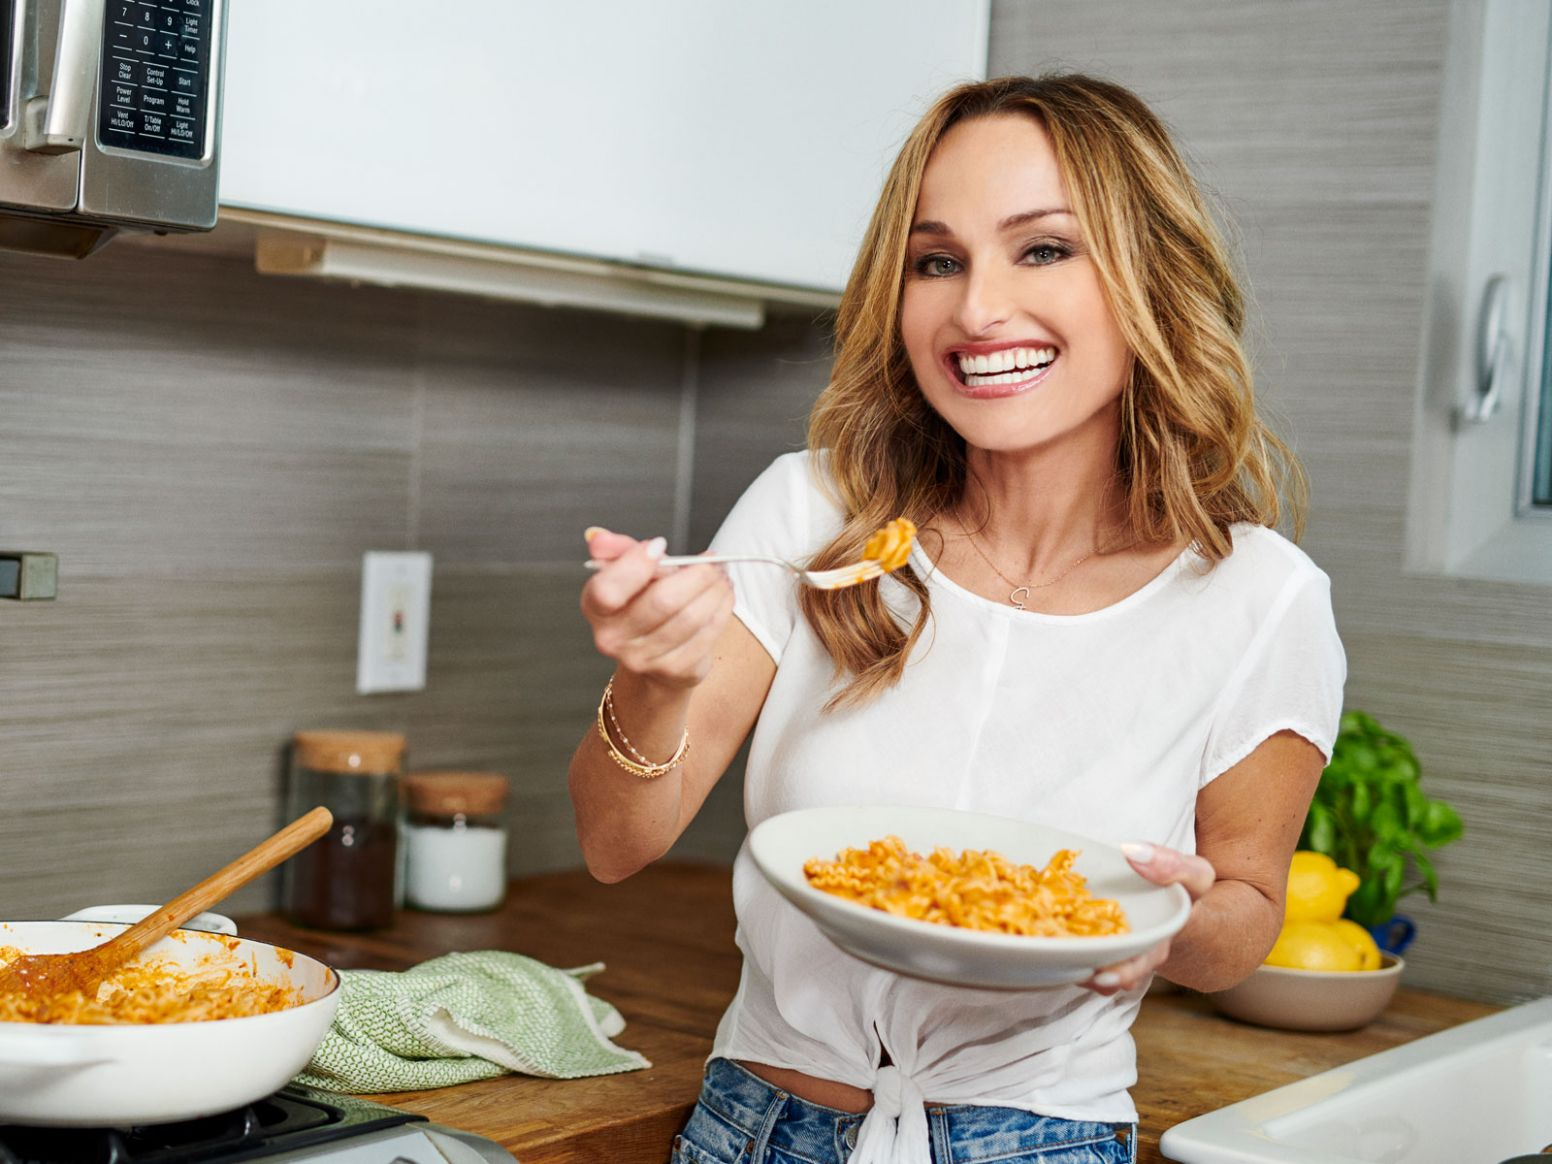 The Cheap Wine Giada Swears By | Food & Wine